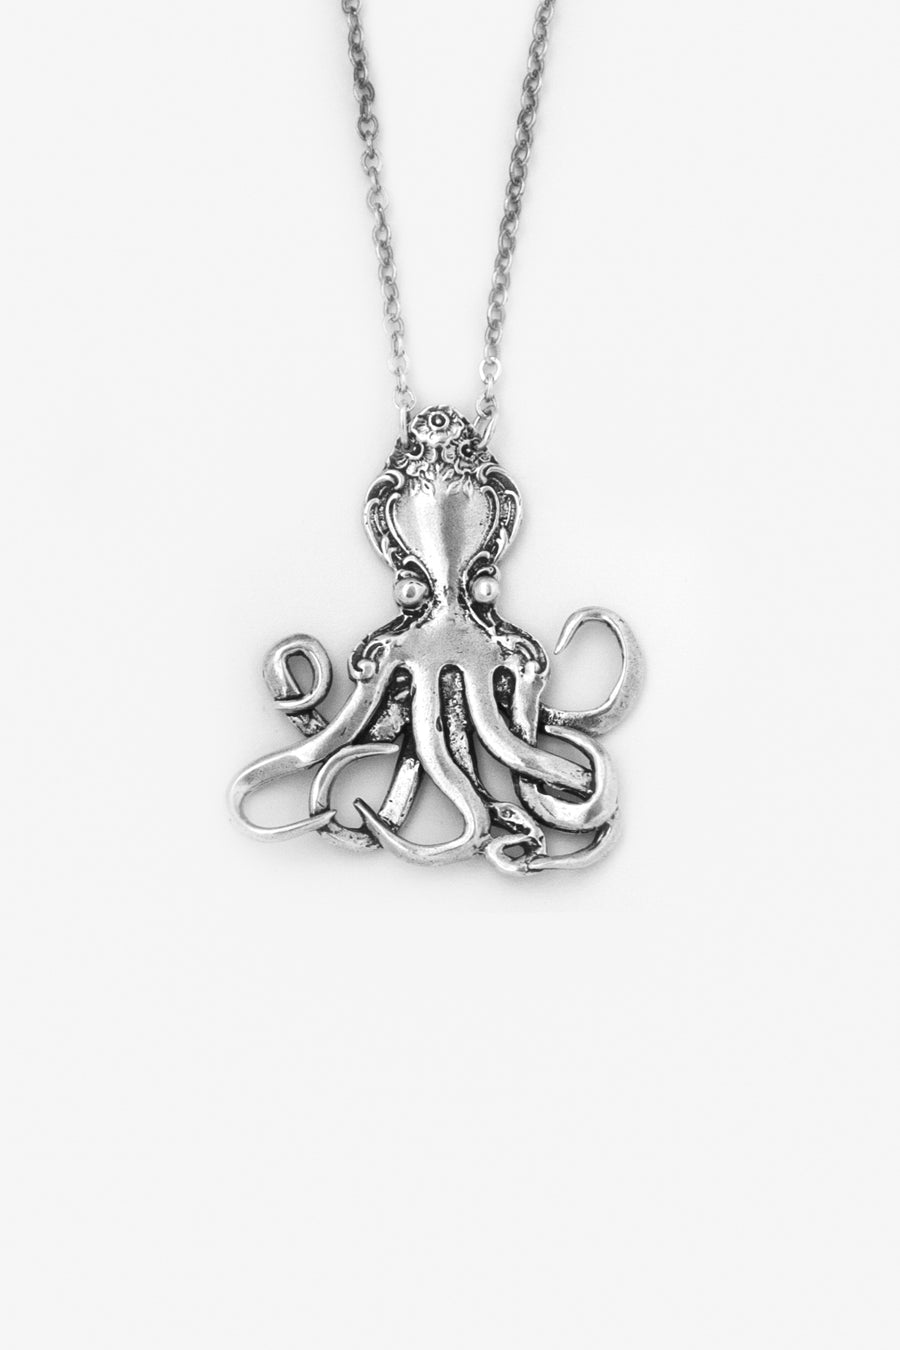 Octopus Sterling Silver Necklace - Silver Spoon Jewelry